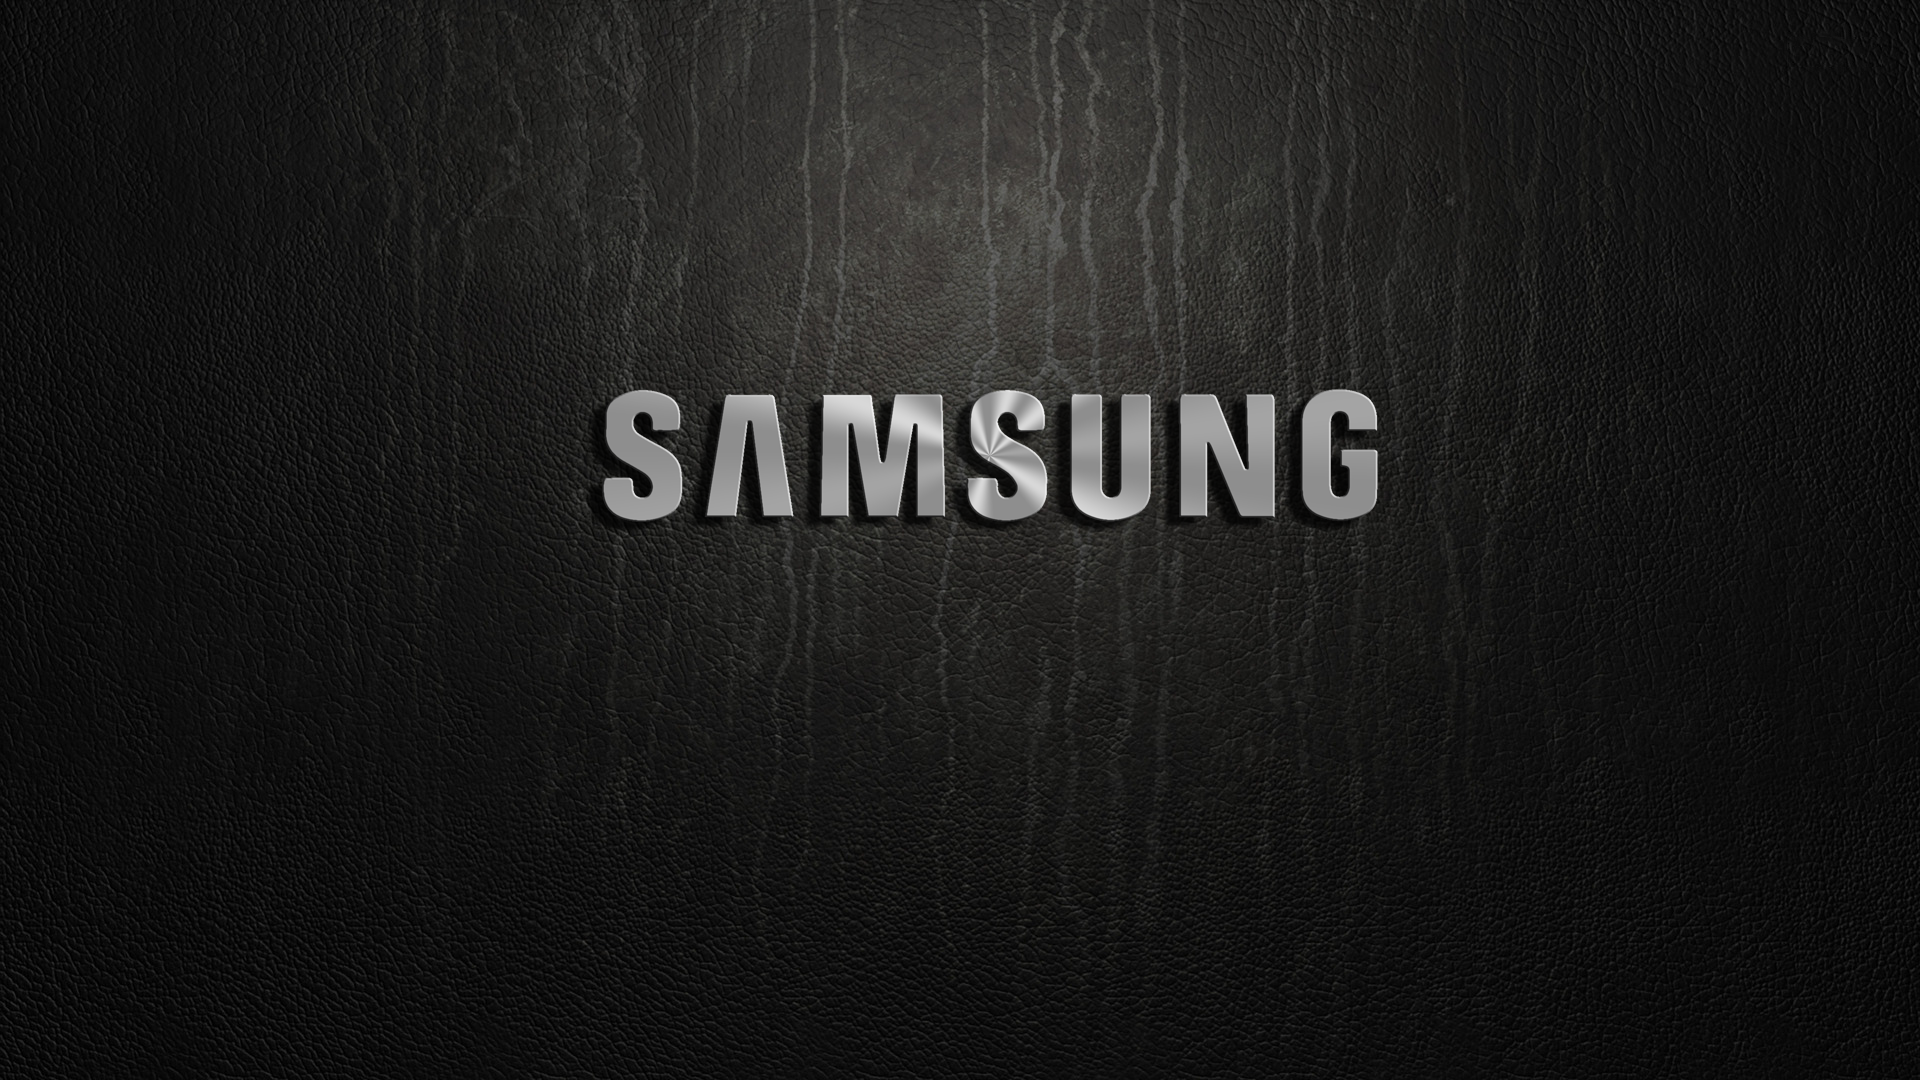 Samsung Full HD Papel De Parede And Background Image